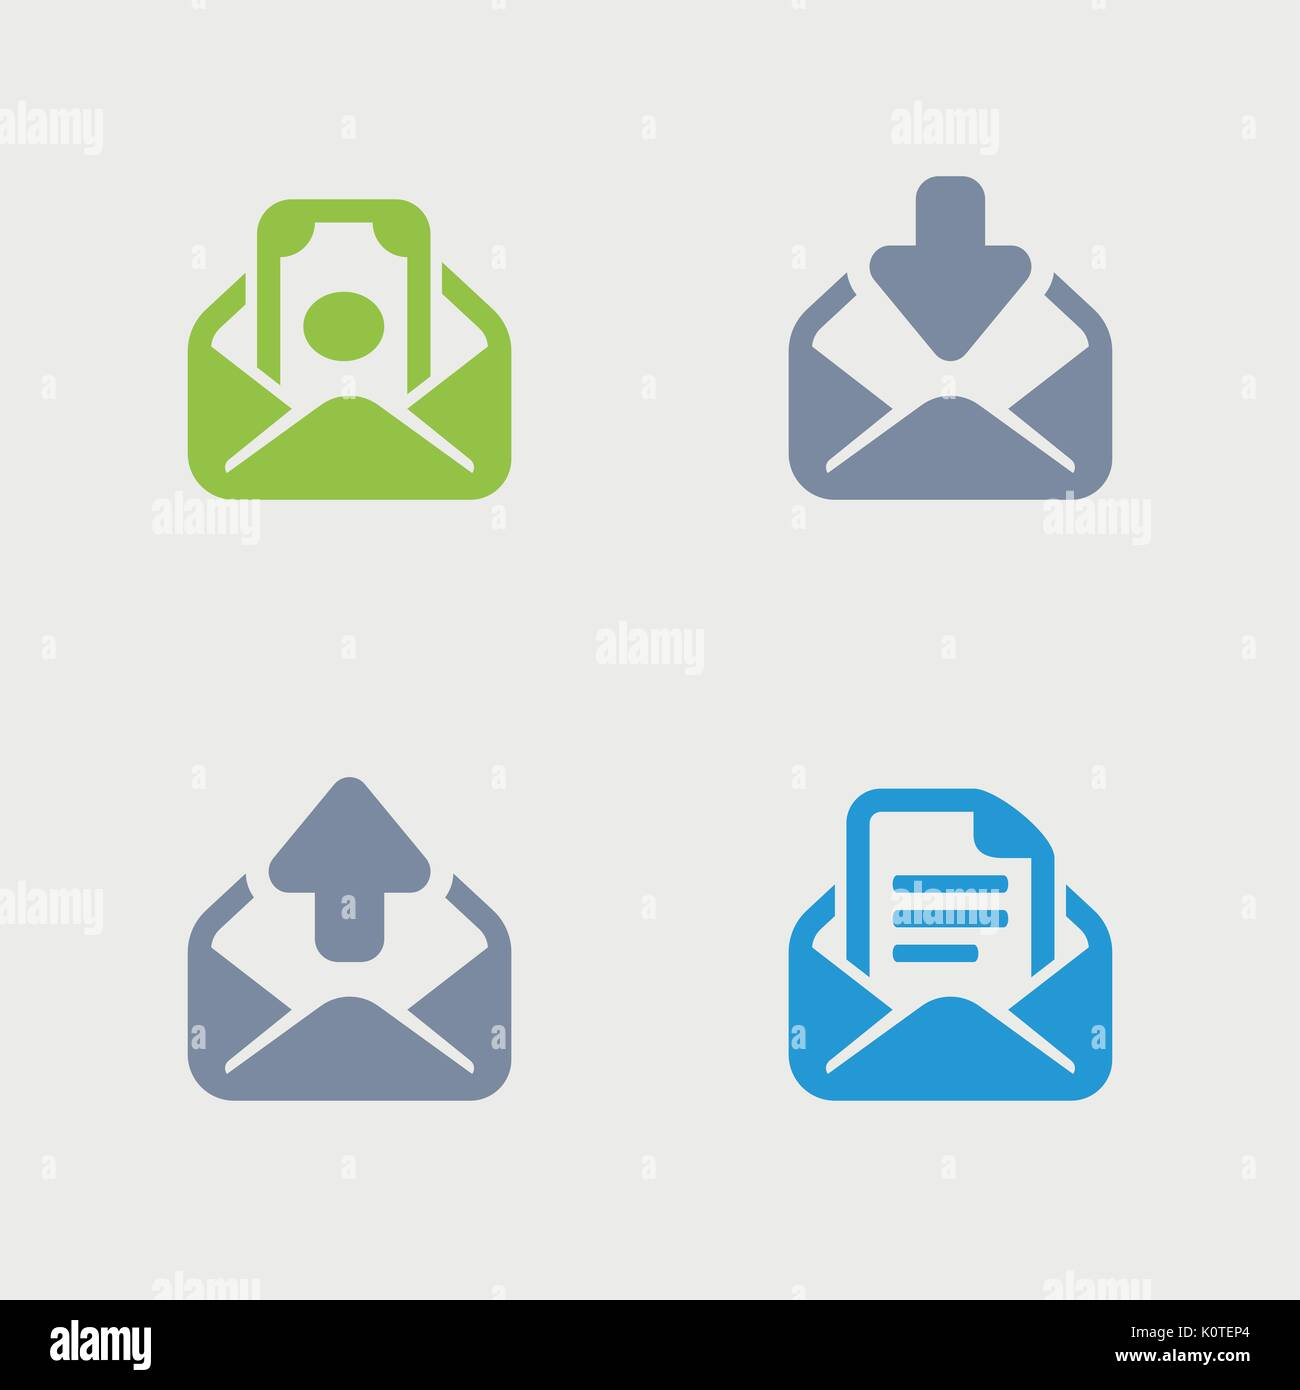 A set of 4 professional, pixel-perfect vector icons designed on a 32x32 pixel grid. - Stock Image